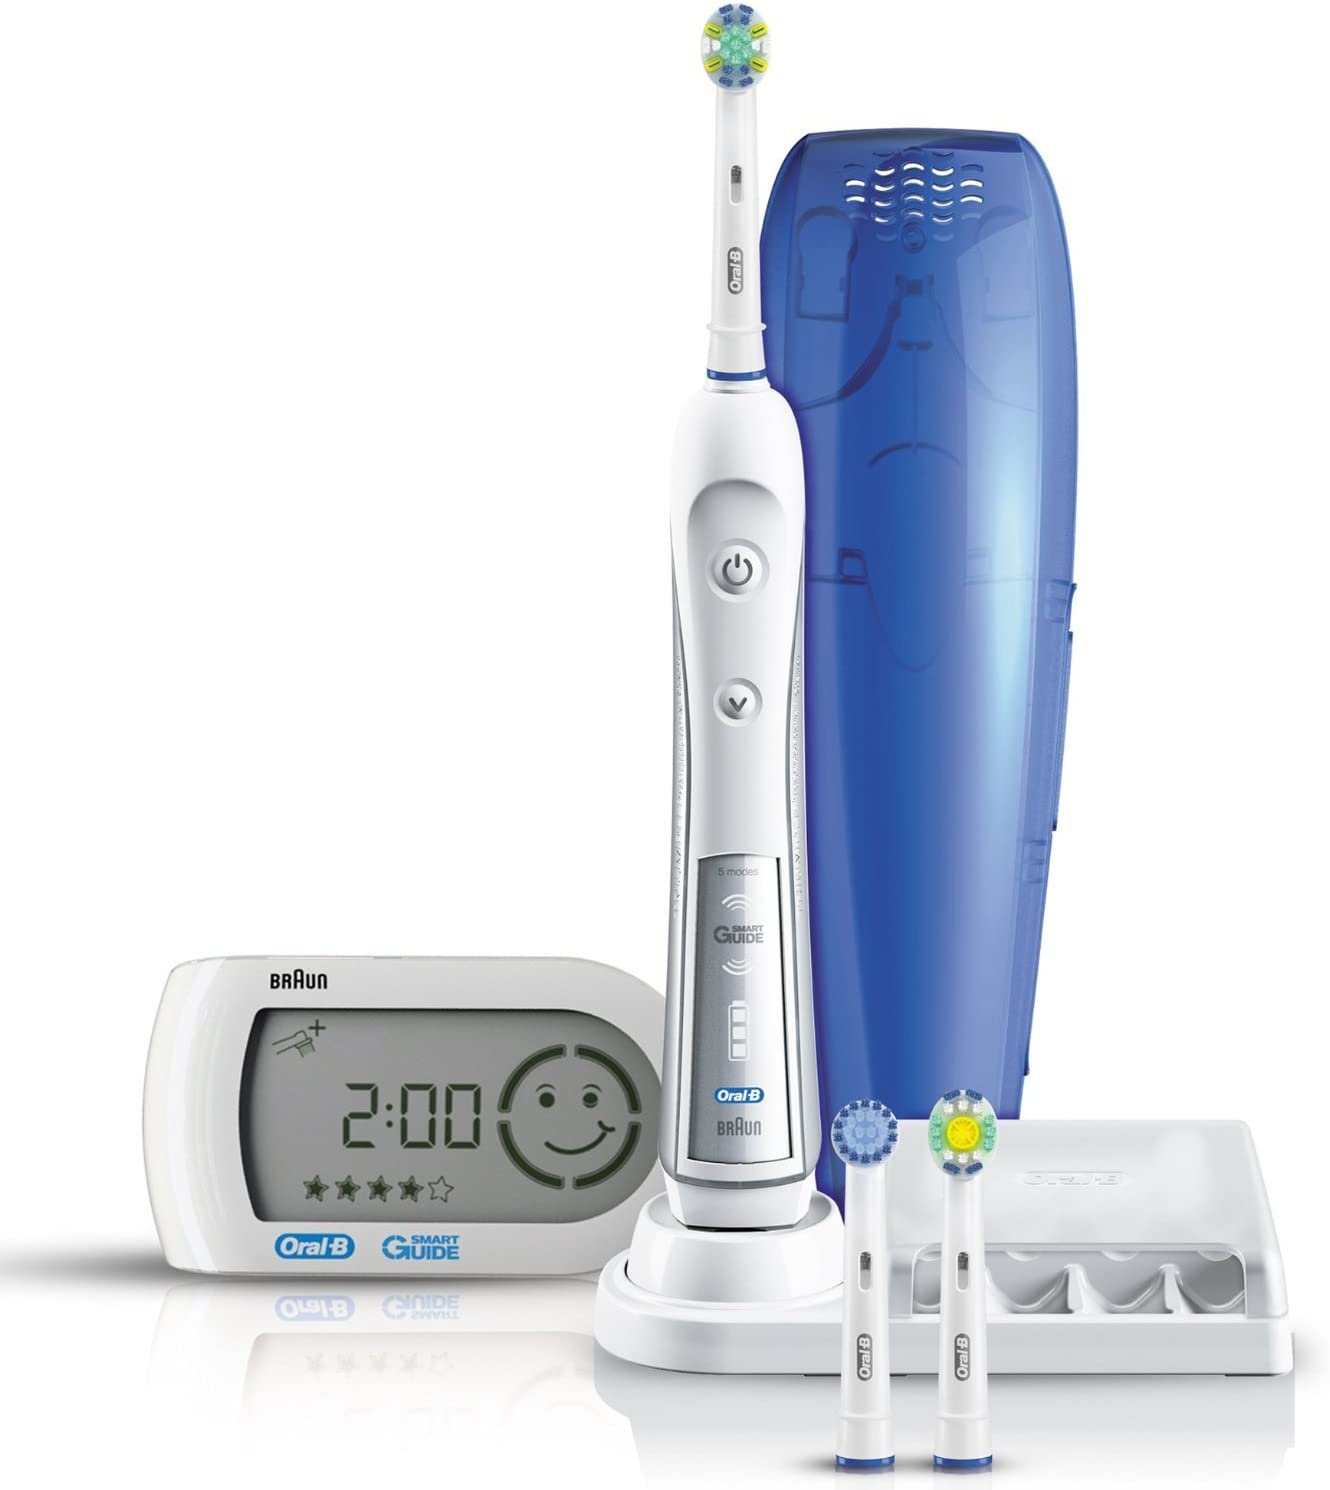 Braun Oral B Triumph 5000 Five Mode Power Toothbrush with